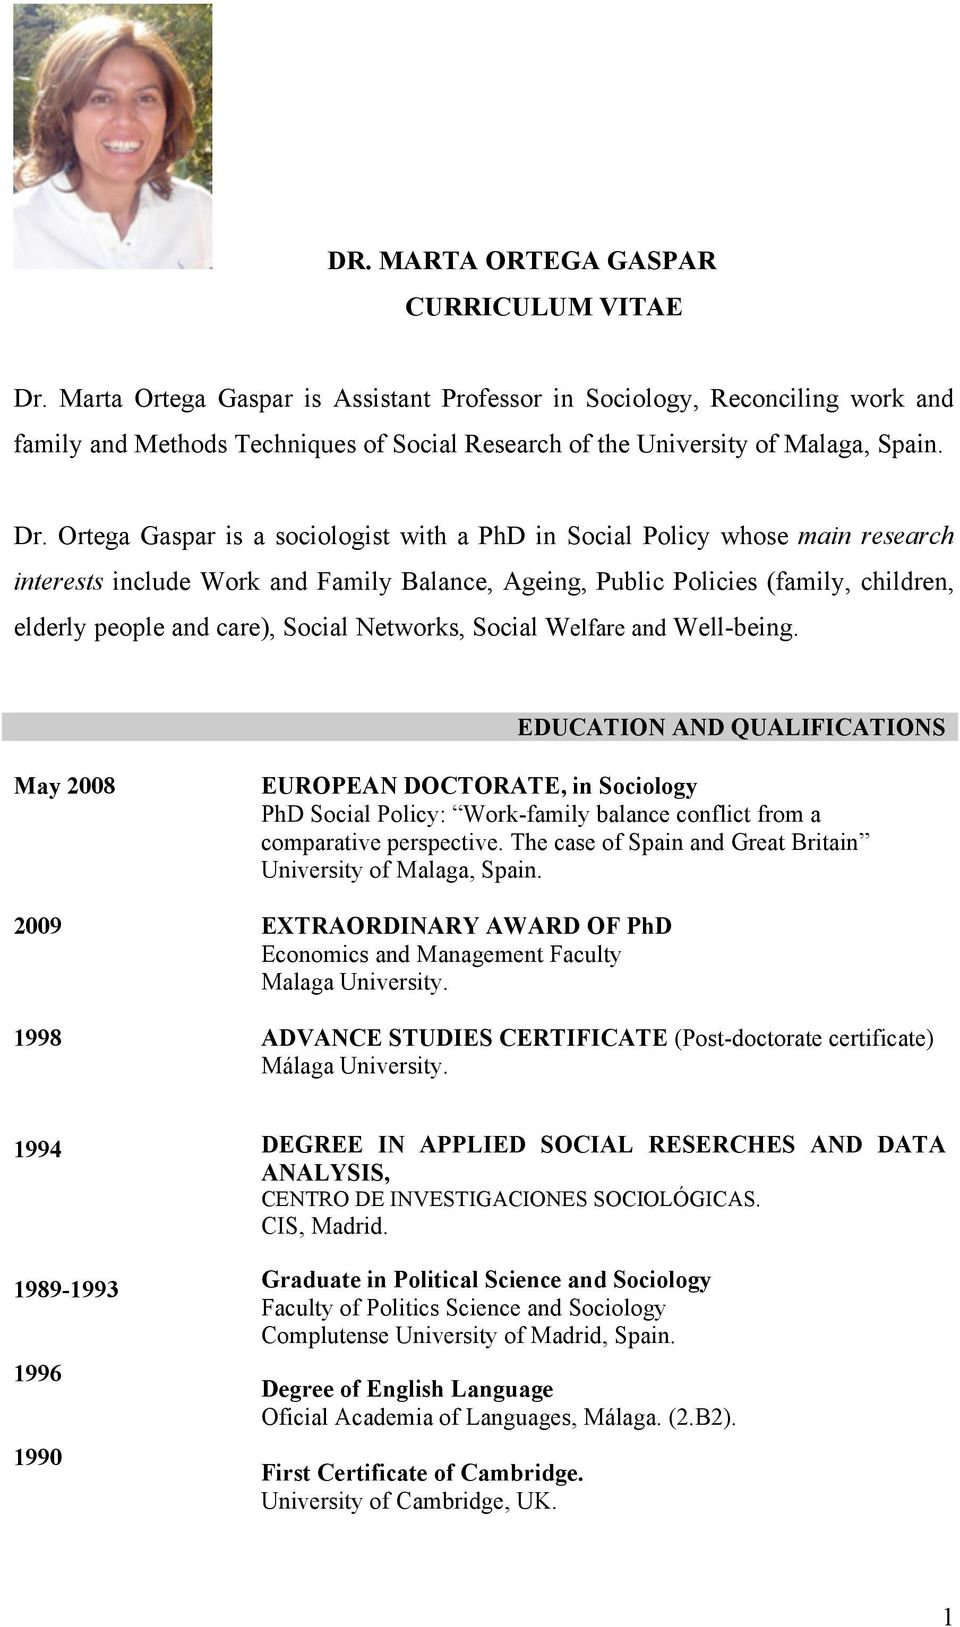 Ortega Gaspar is a sociologist with a PhD in Social Policy whose main research interests include Work and Family Balance, Ageing, Public Policies (family, children, elderly people and care), Social